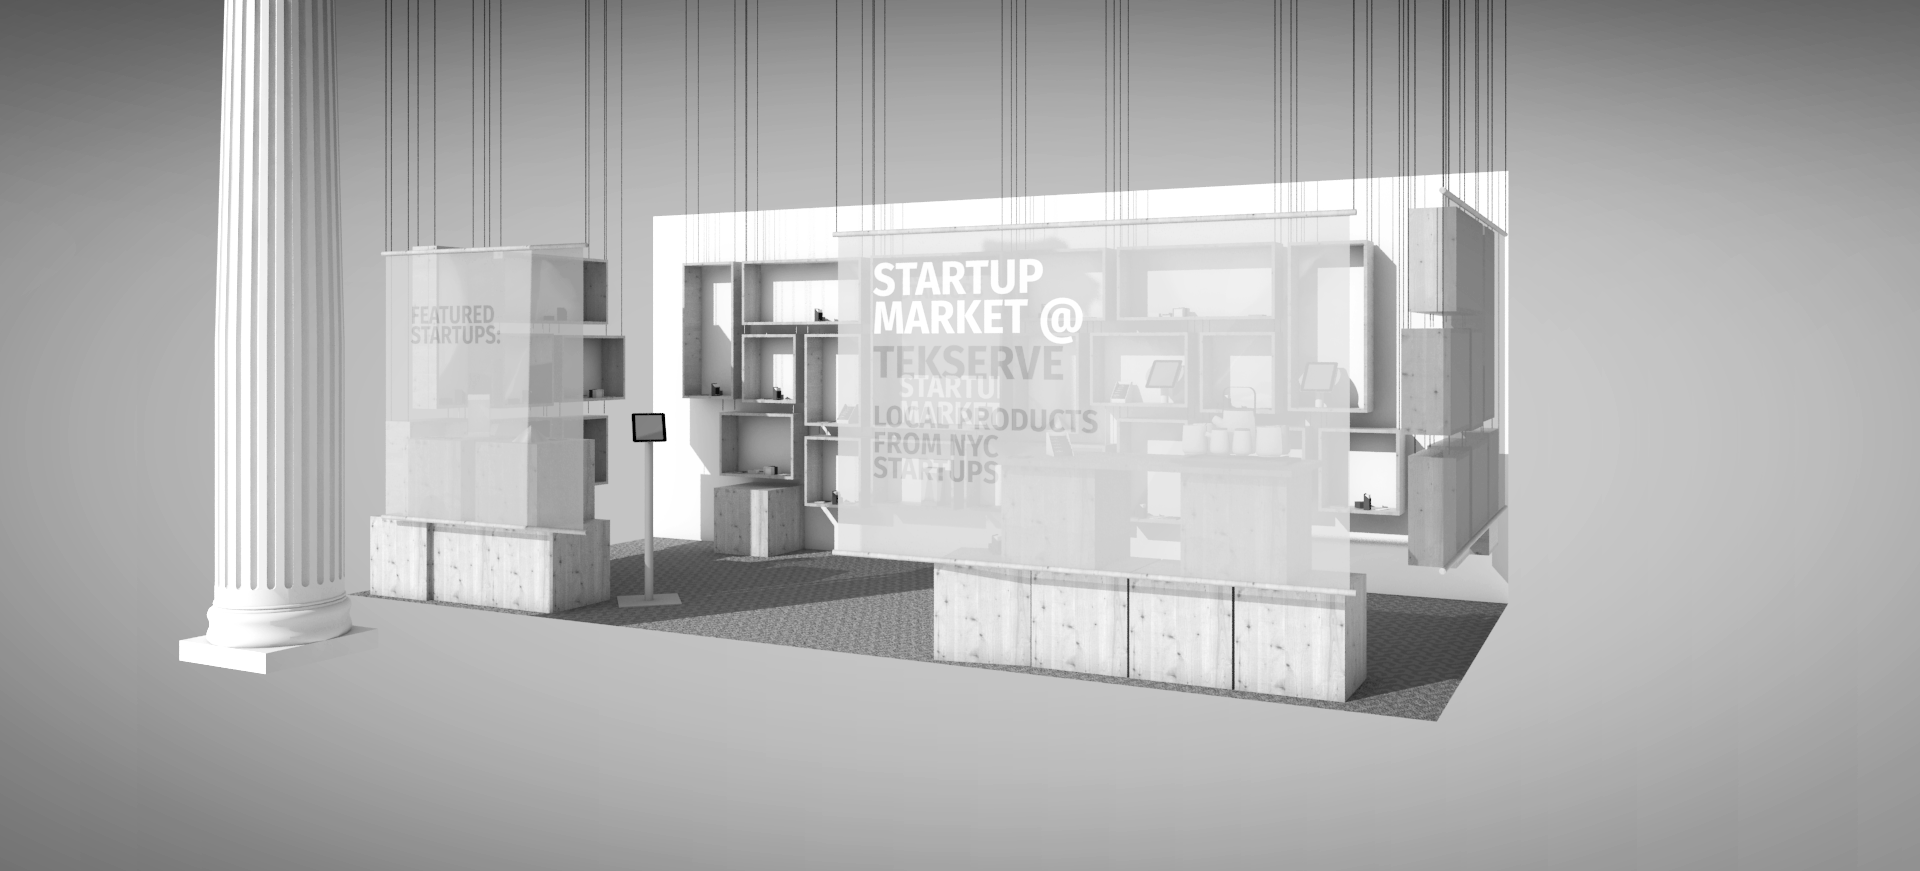 New York pop up - Featuring NY StartUps.More..